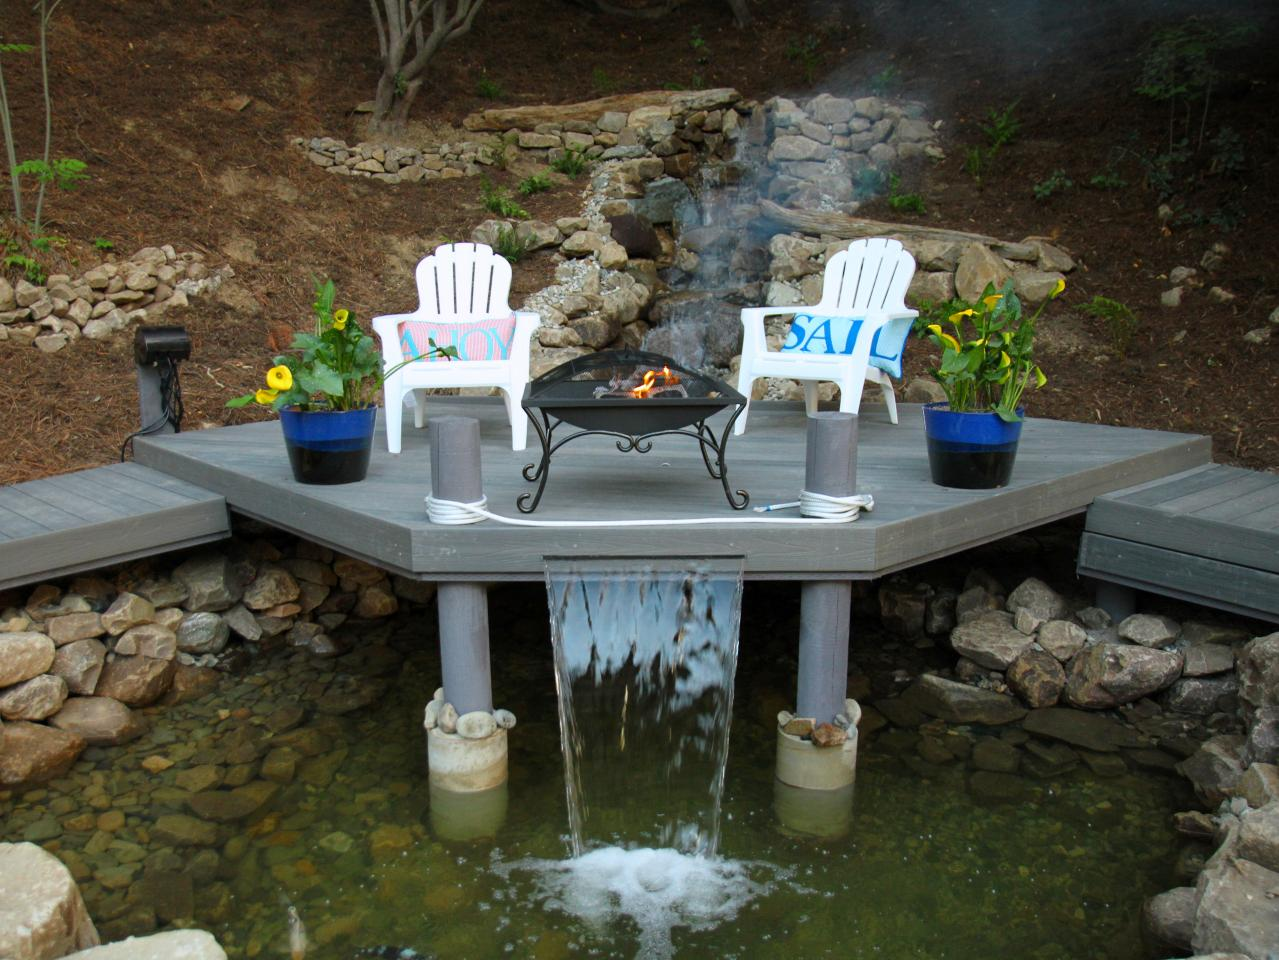 Fire Pit Designs Fair 66 Fire Pit And Outdoor Fireplace Ideas  Diy Network Blog Made  . Inspiration